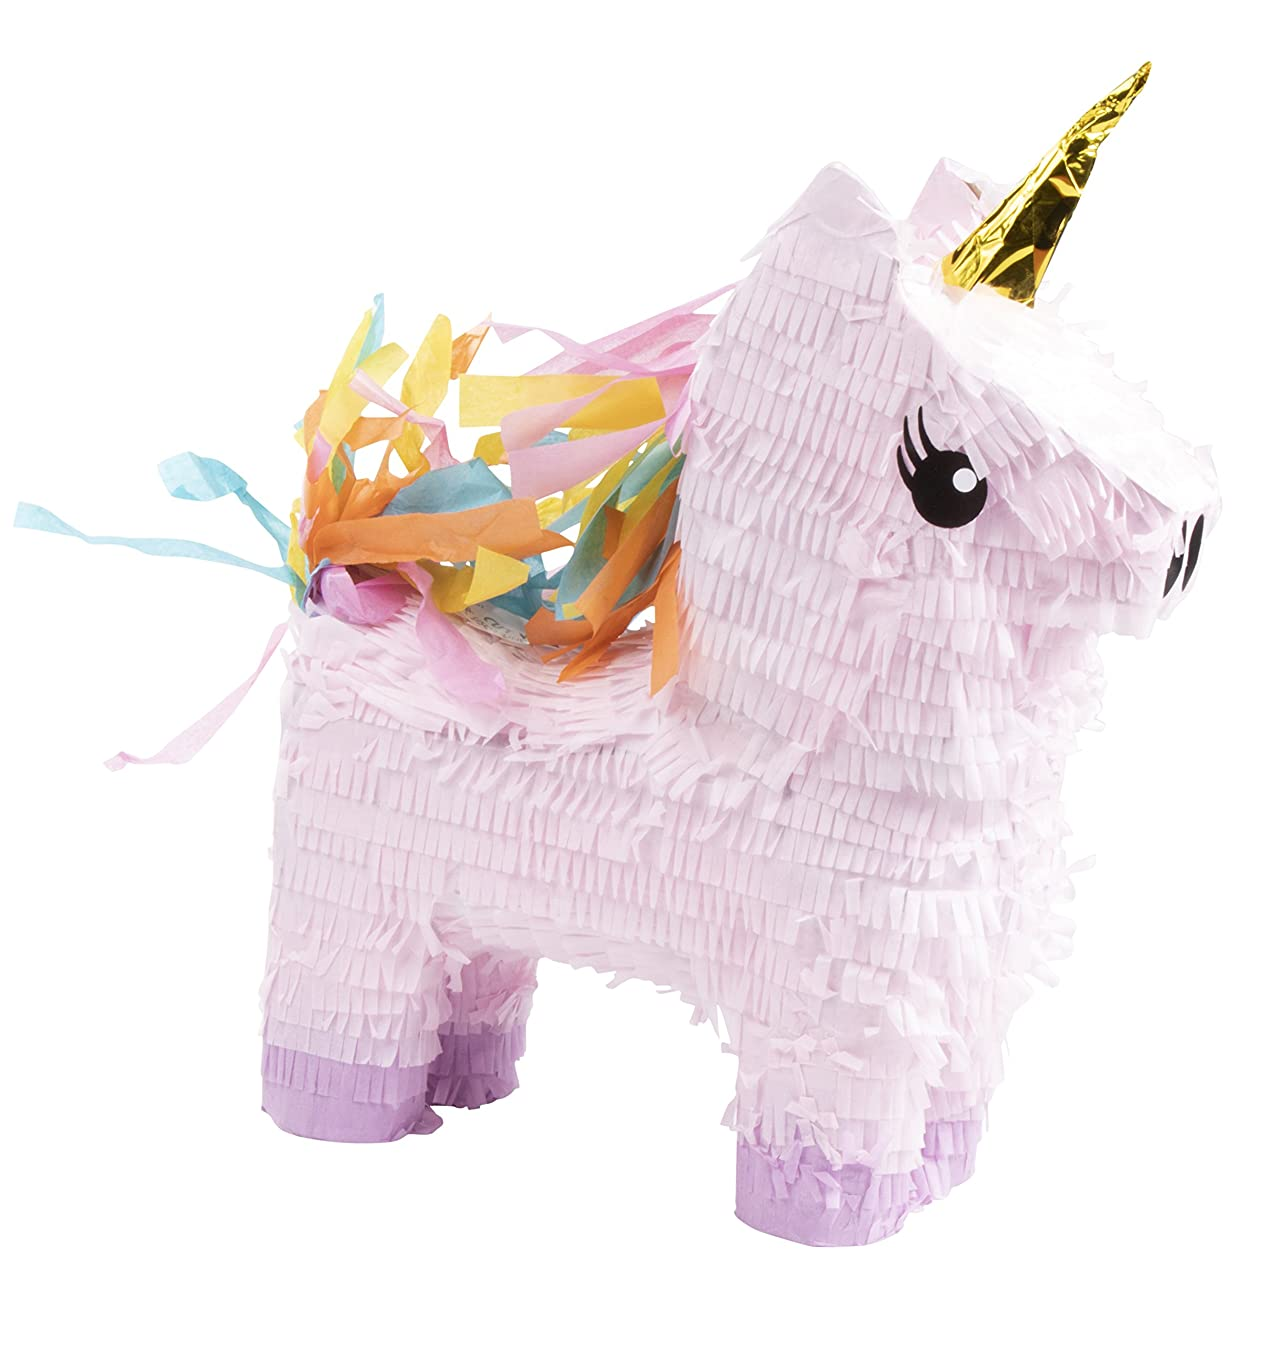 Unicorn Pinata - Kids Birthday Party Supplies for Unicorn Themed Party, Pink and Purple with Gold Foil Horn, 13.4 x 15.5 x 4.6 Inches